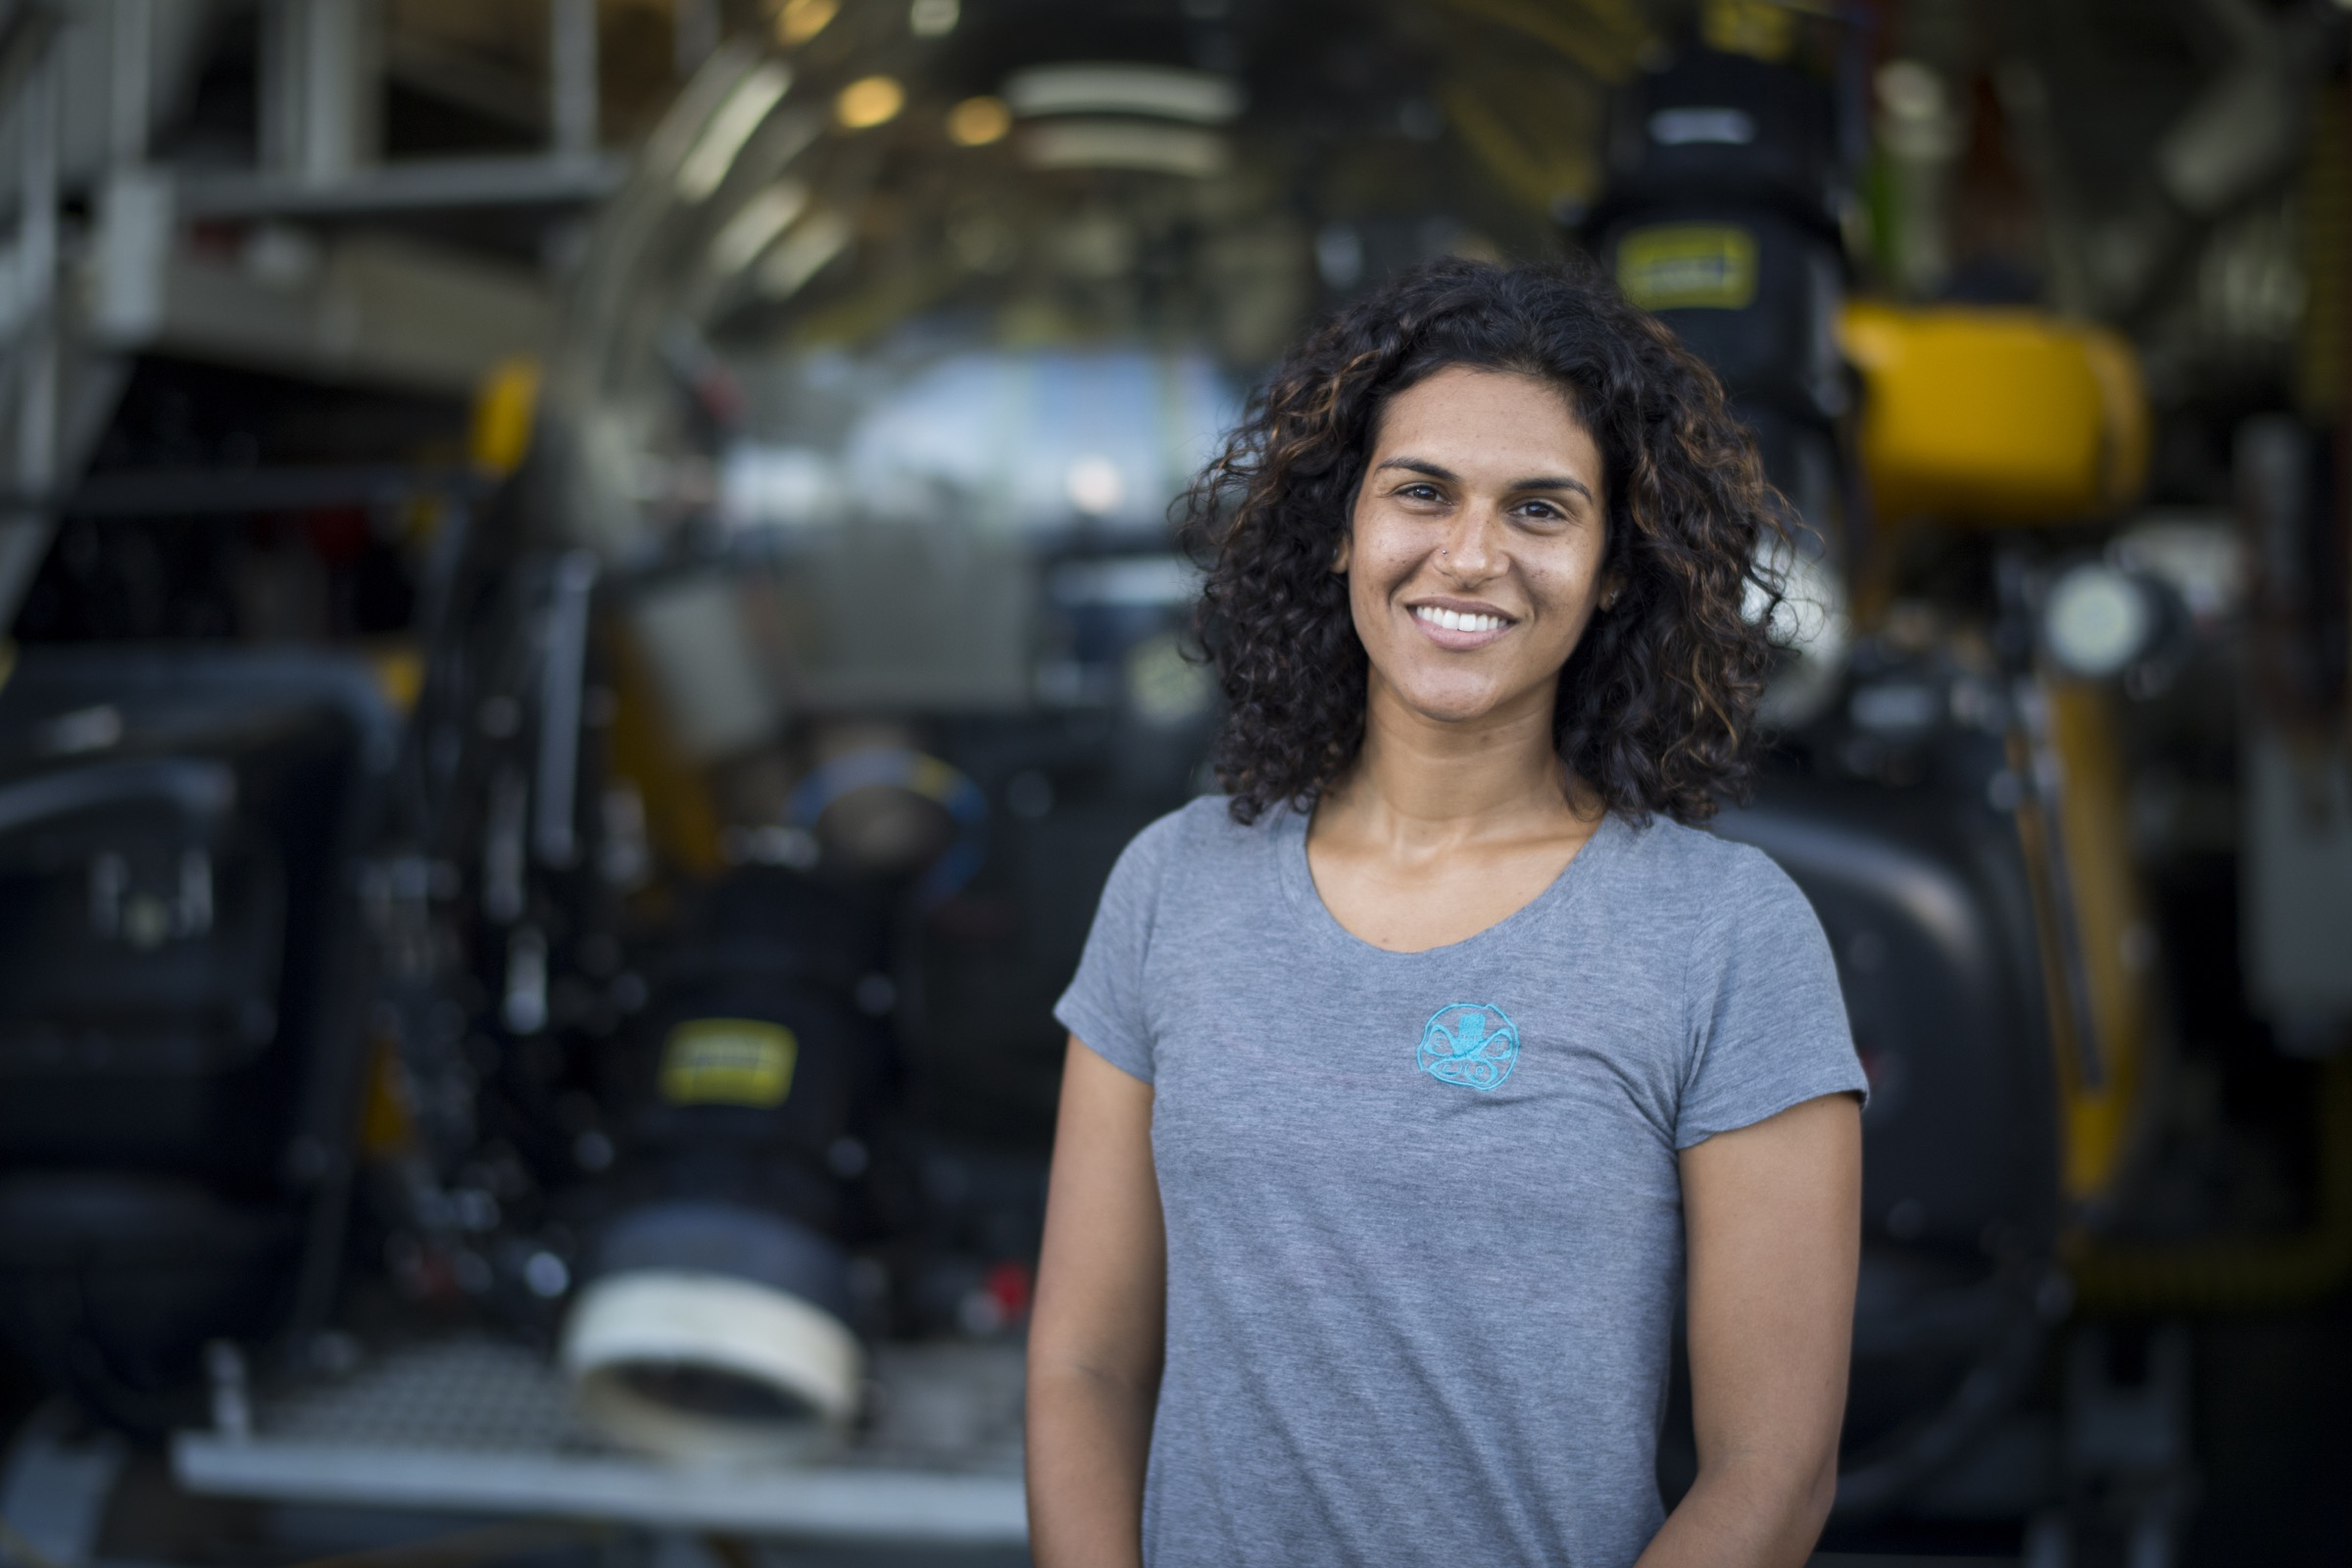 Diva Amon, a marine biologist from the Natural History Museum of London, UK, stands in front of one of the submersibles she has used to study life around deep hydrothermal vents. Photograph by Novus Select